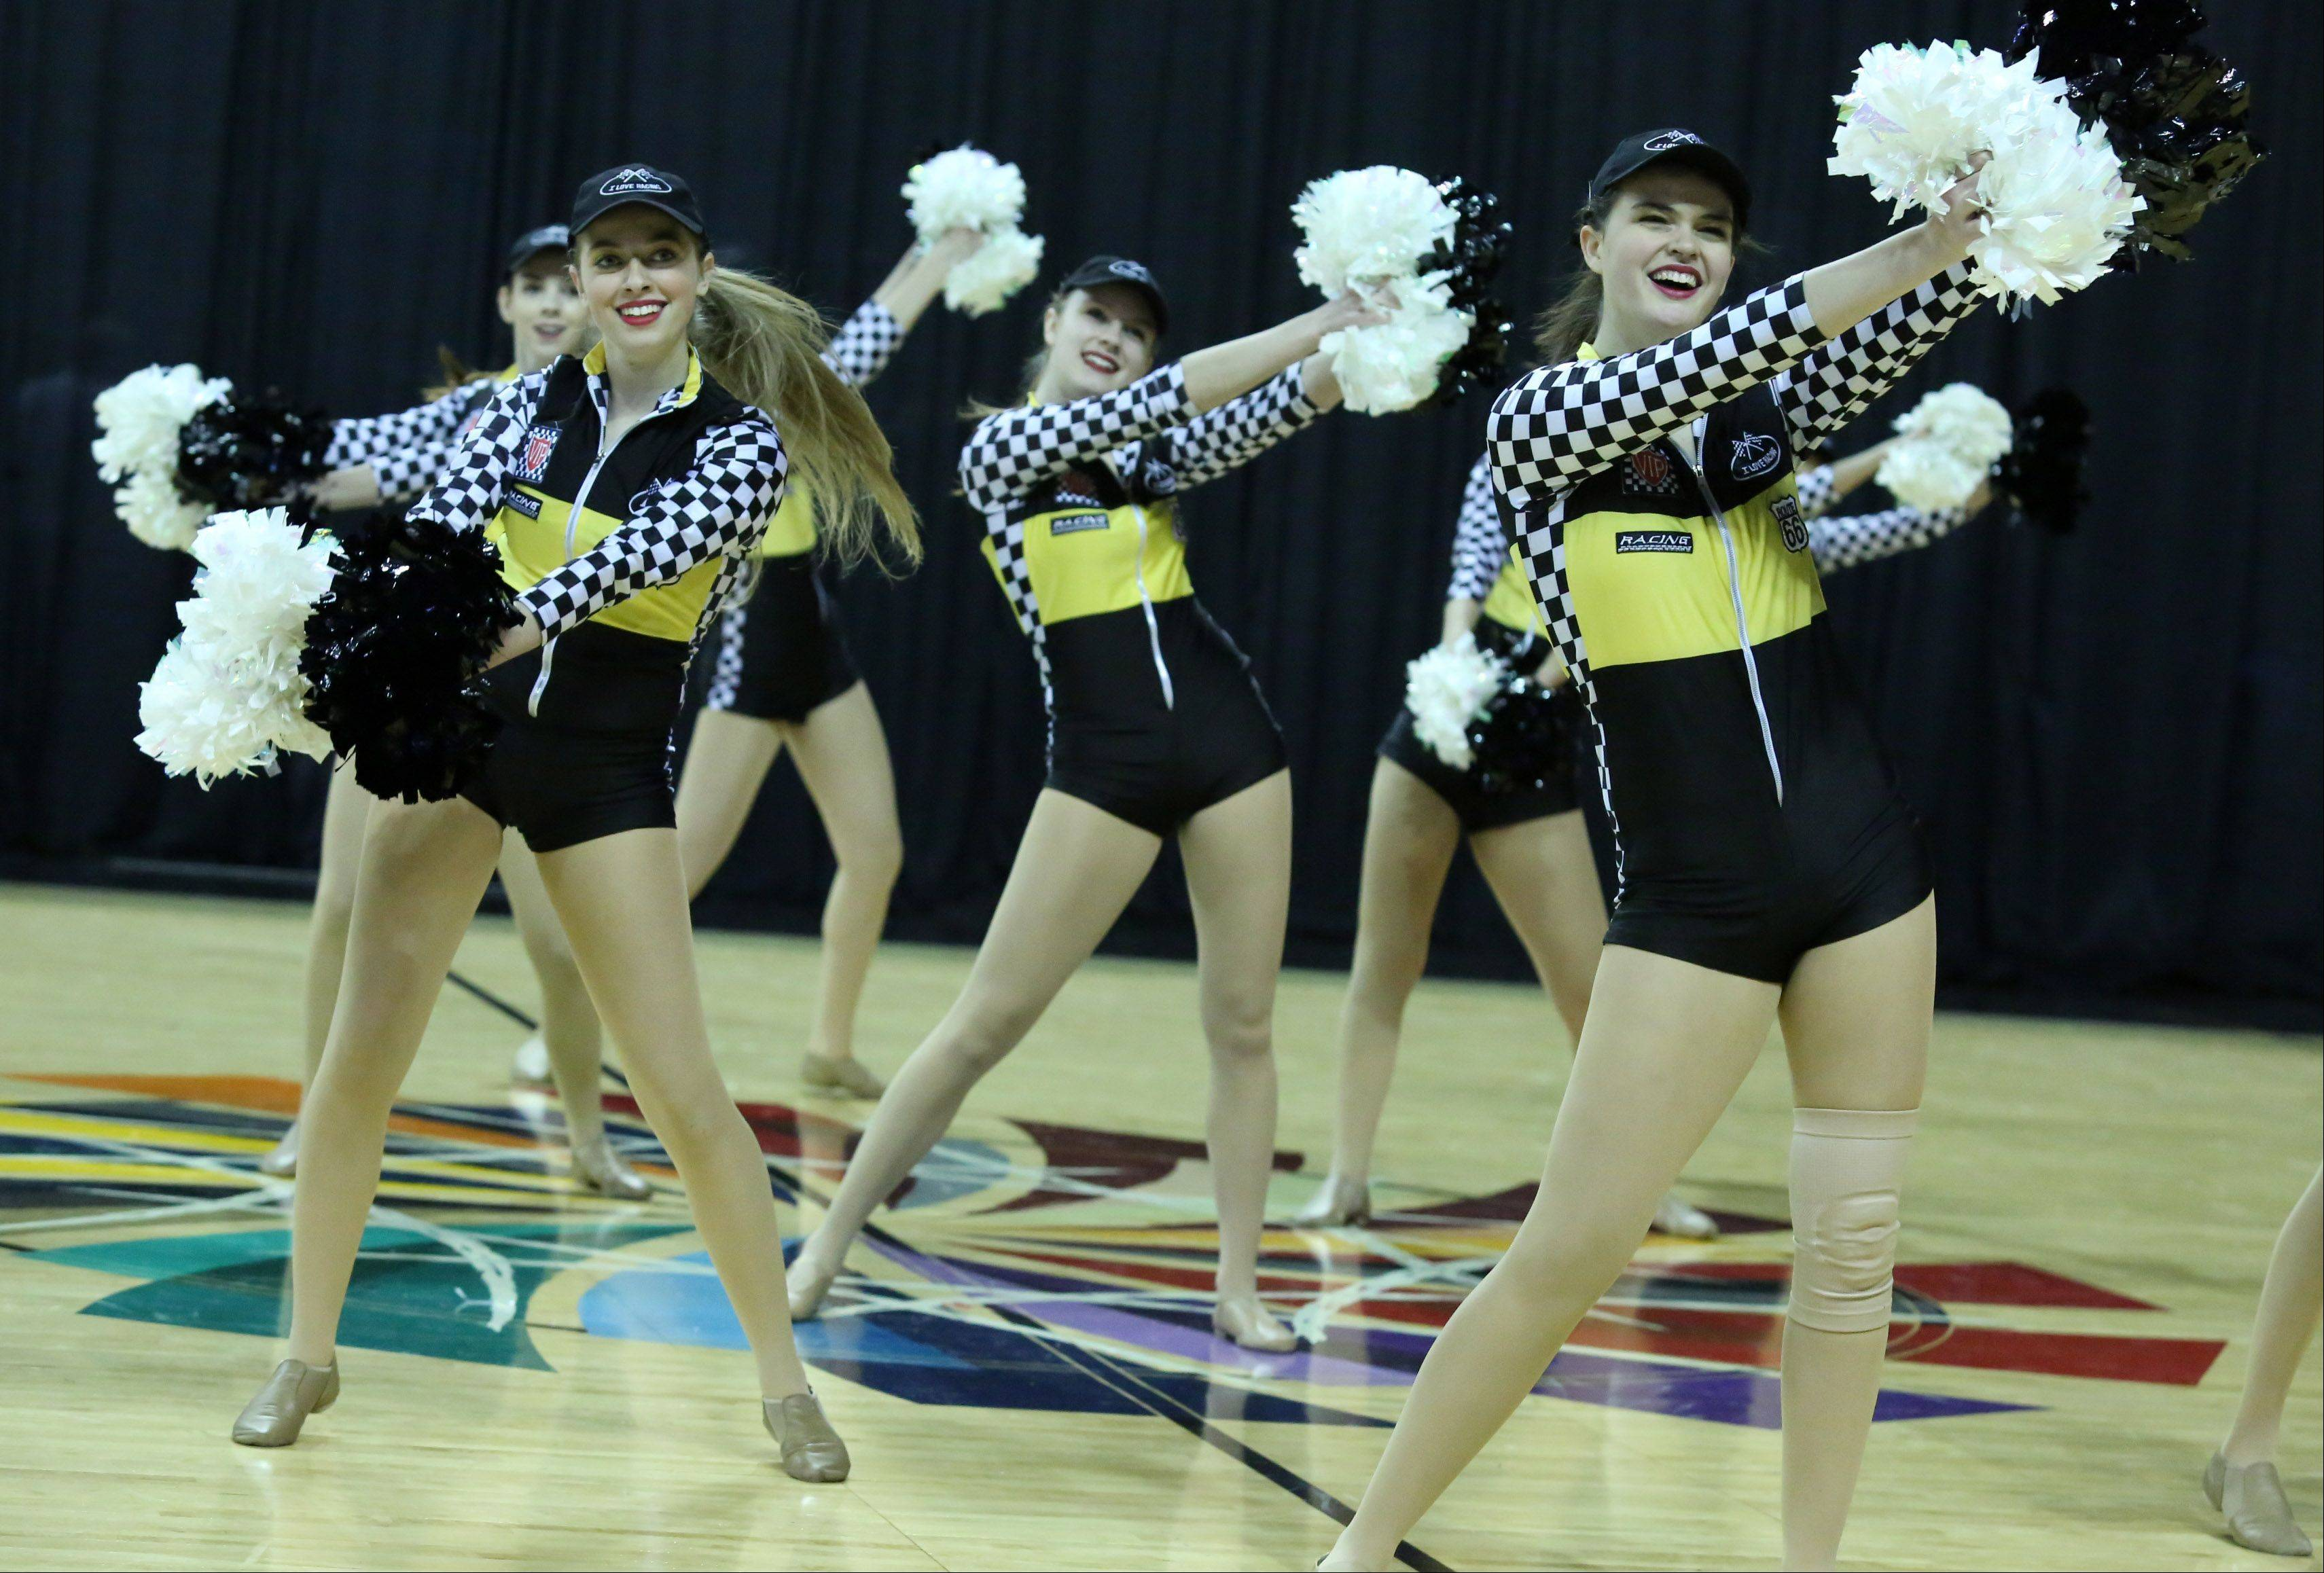 Elk Grove High School dance team competes in the IHSA Winter Meltdown Cheerleading and Dance Competition at Sears Centre Arena on Saturday in Hoffman Estates.